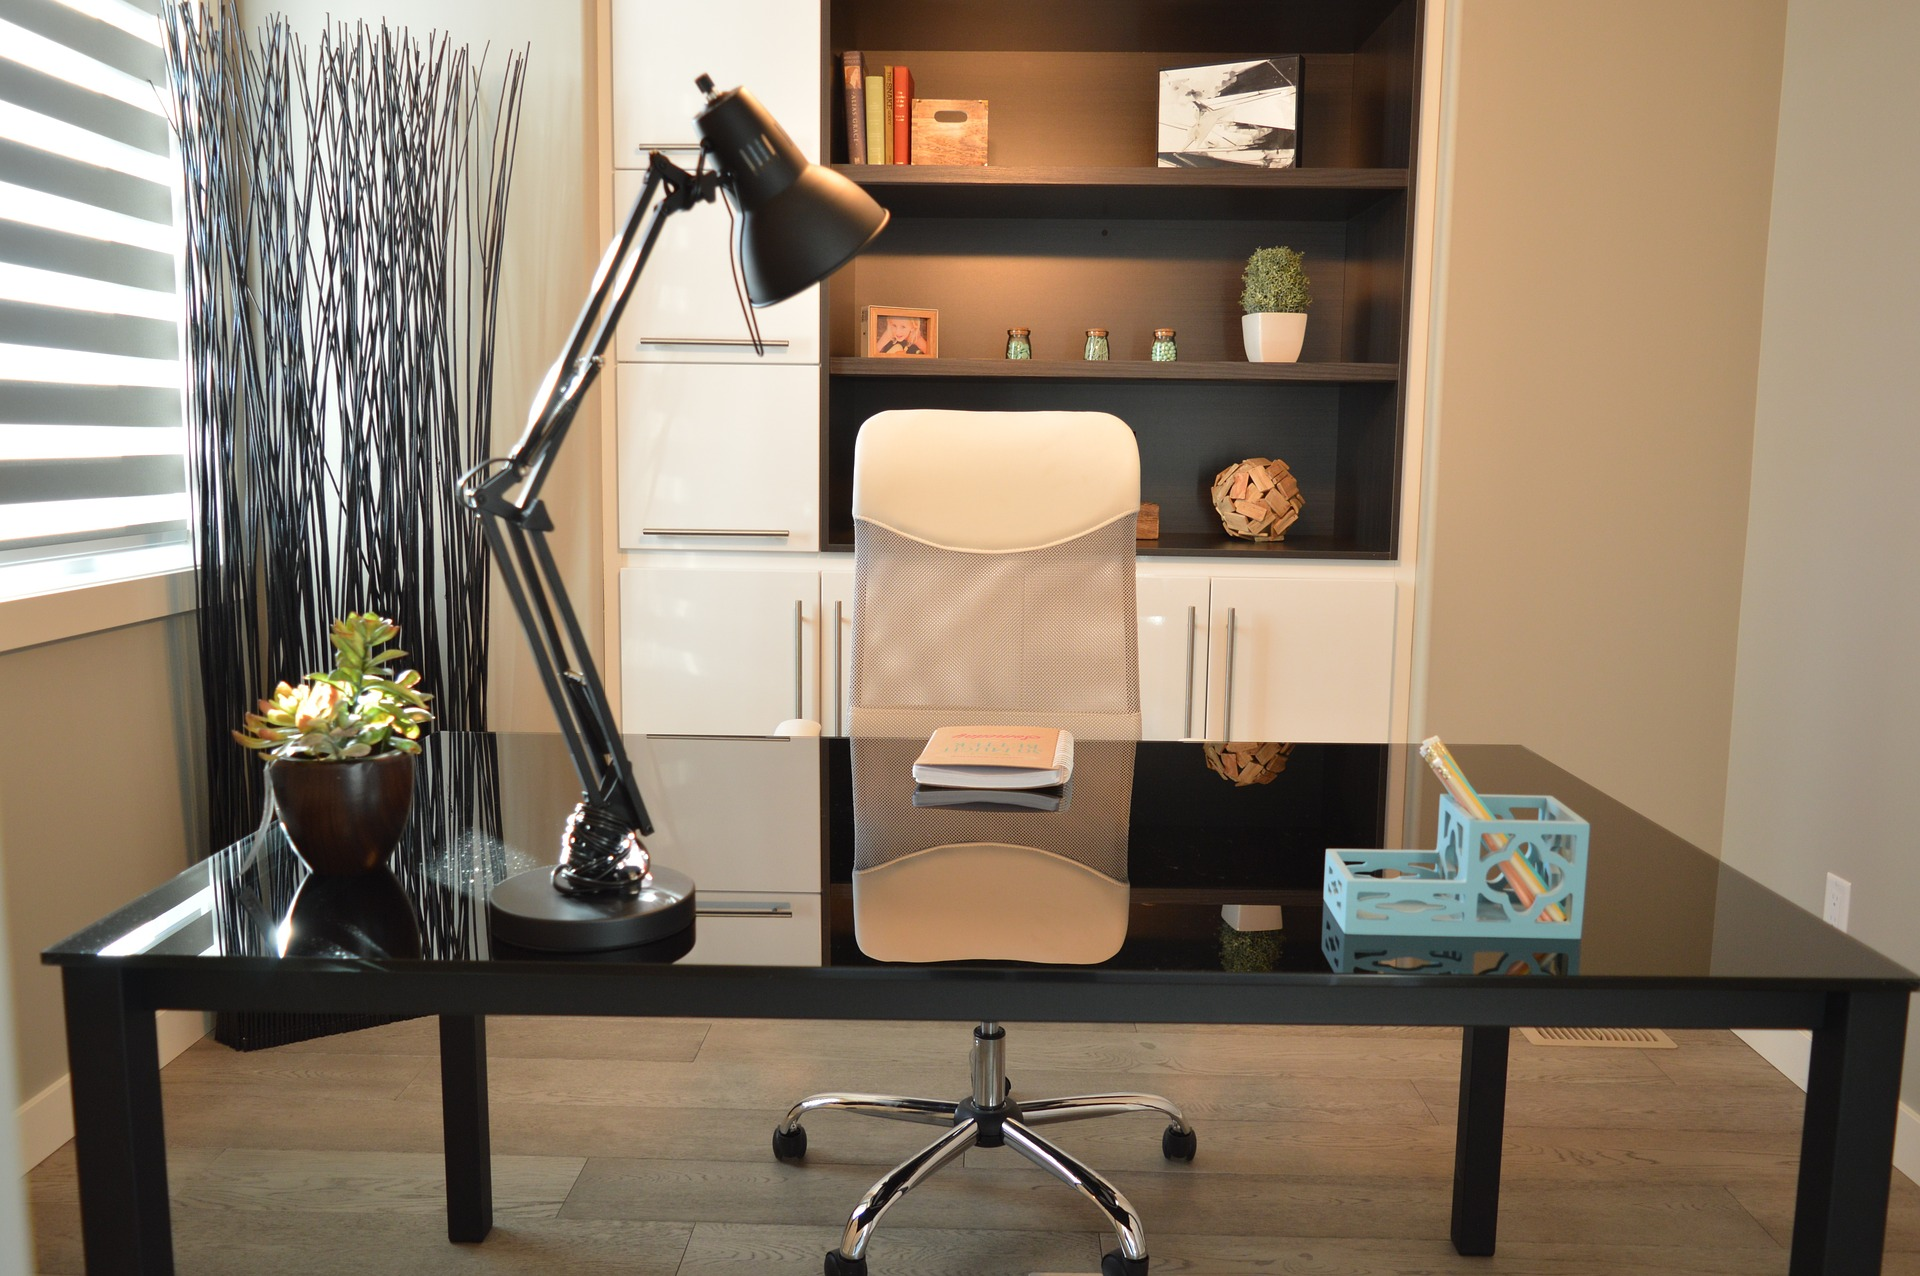 How To Decorate Your Office 5 Tips For Decorating Your Commercial Office Space Cascade